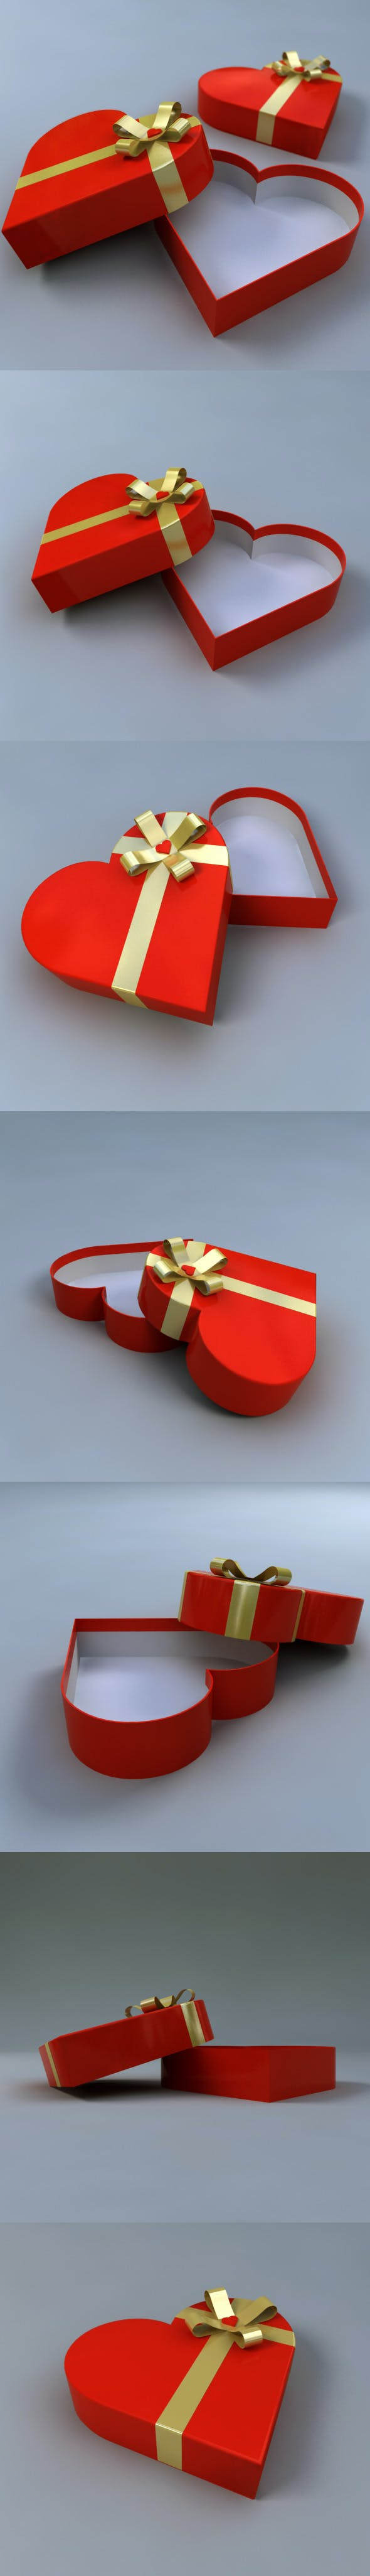 Heart Shaped Gift Box - 3DOcean Item for Sale